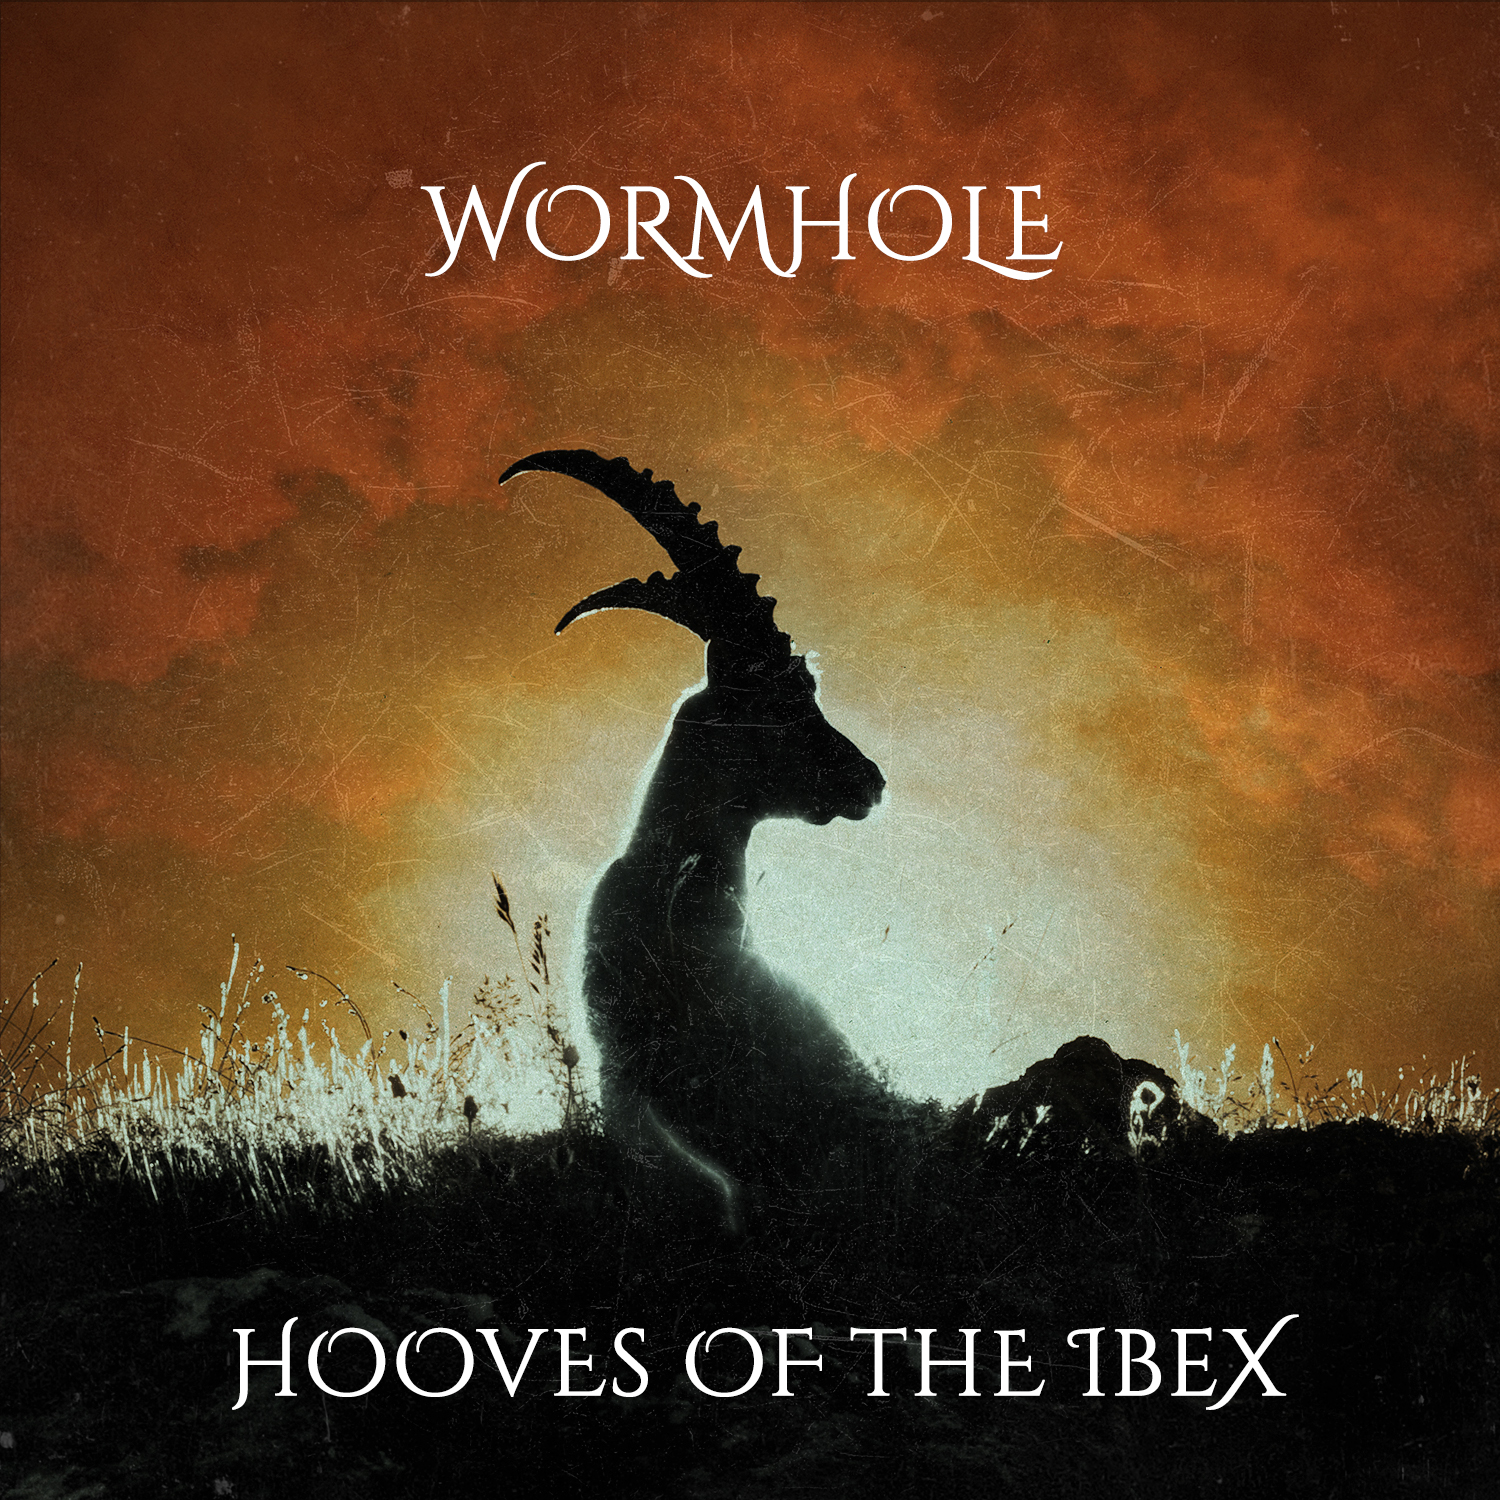 Hooves of the Ibex, Wormhole